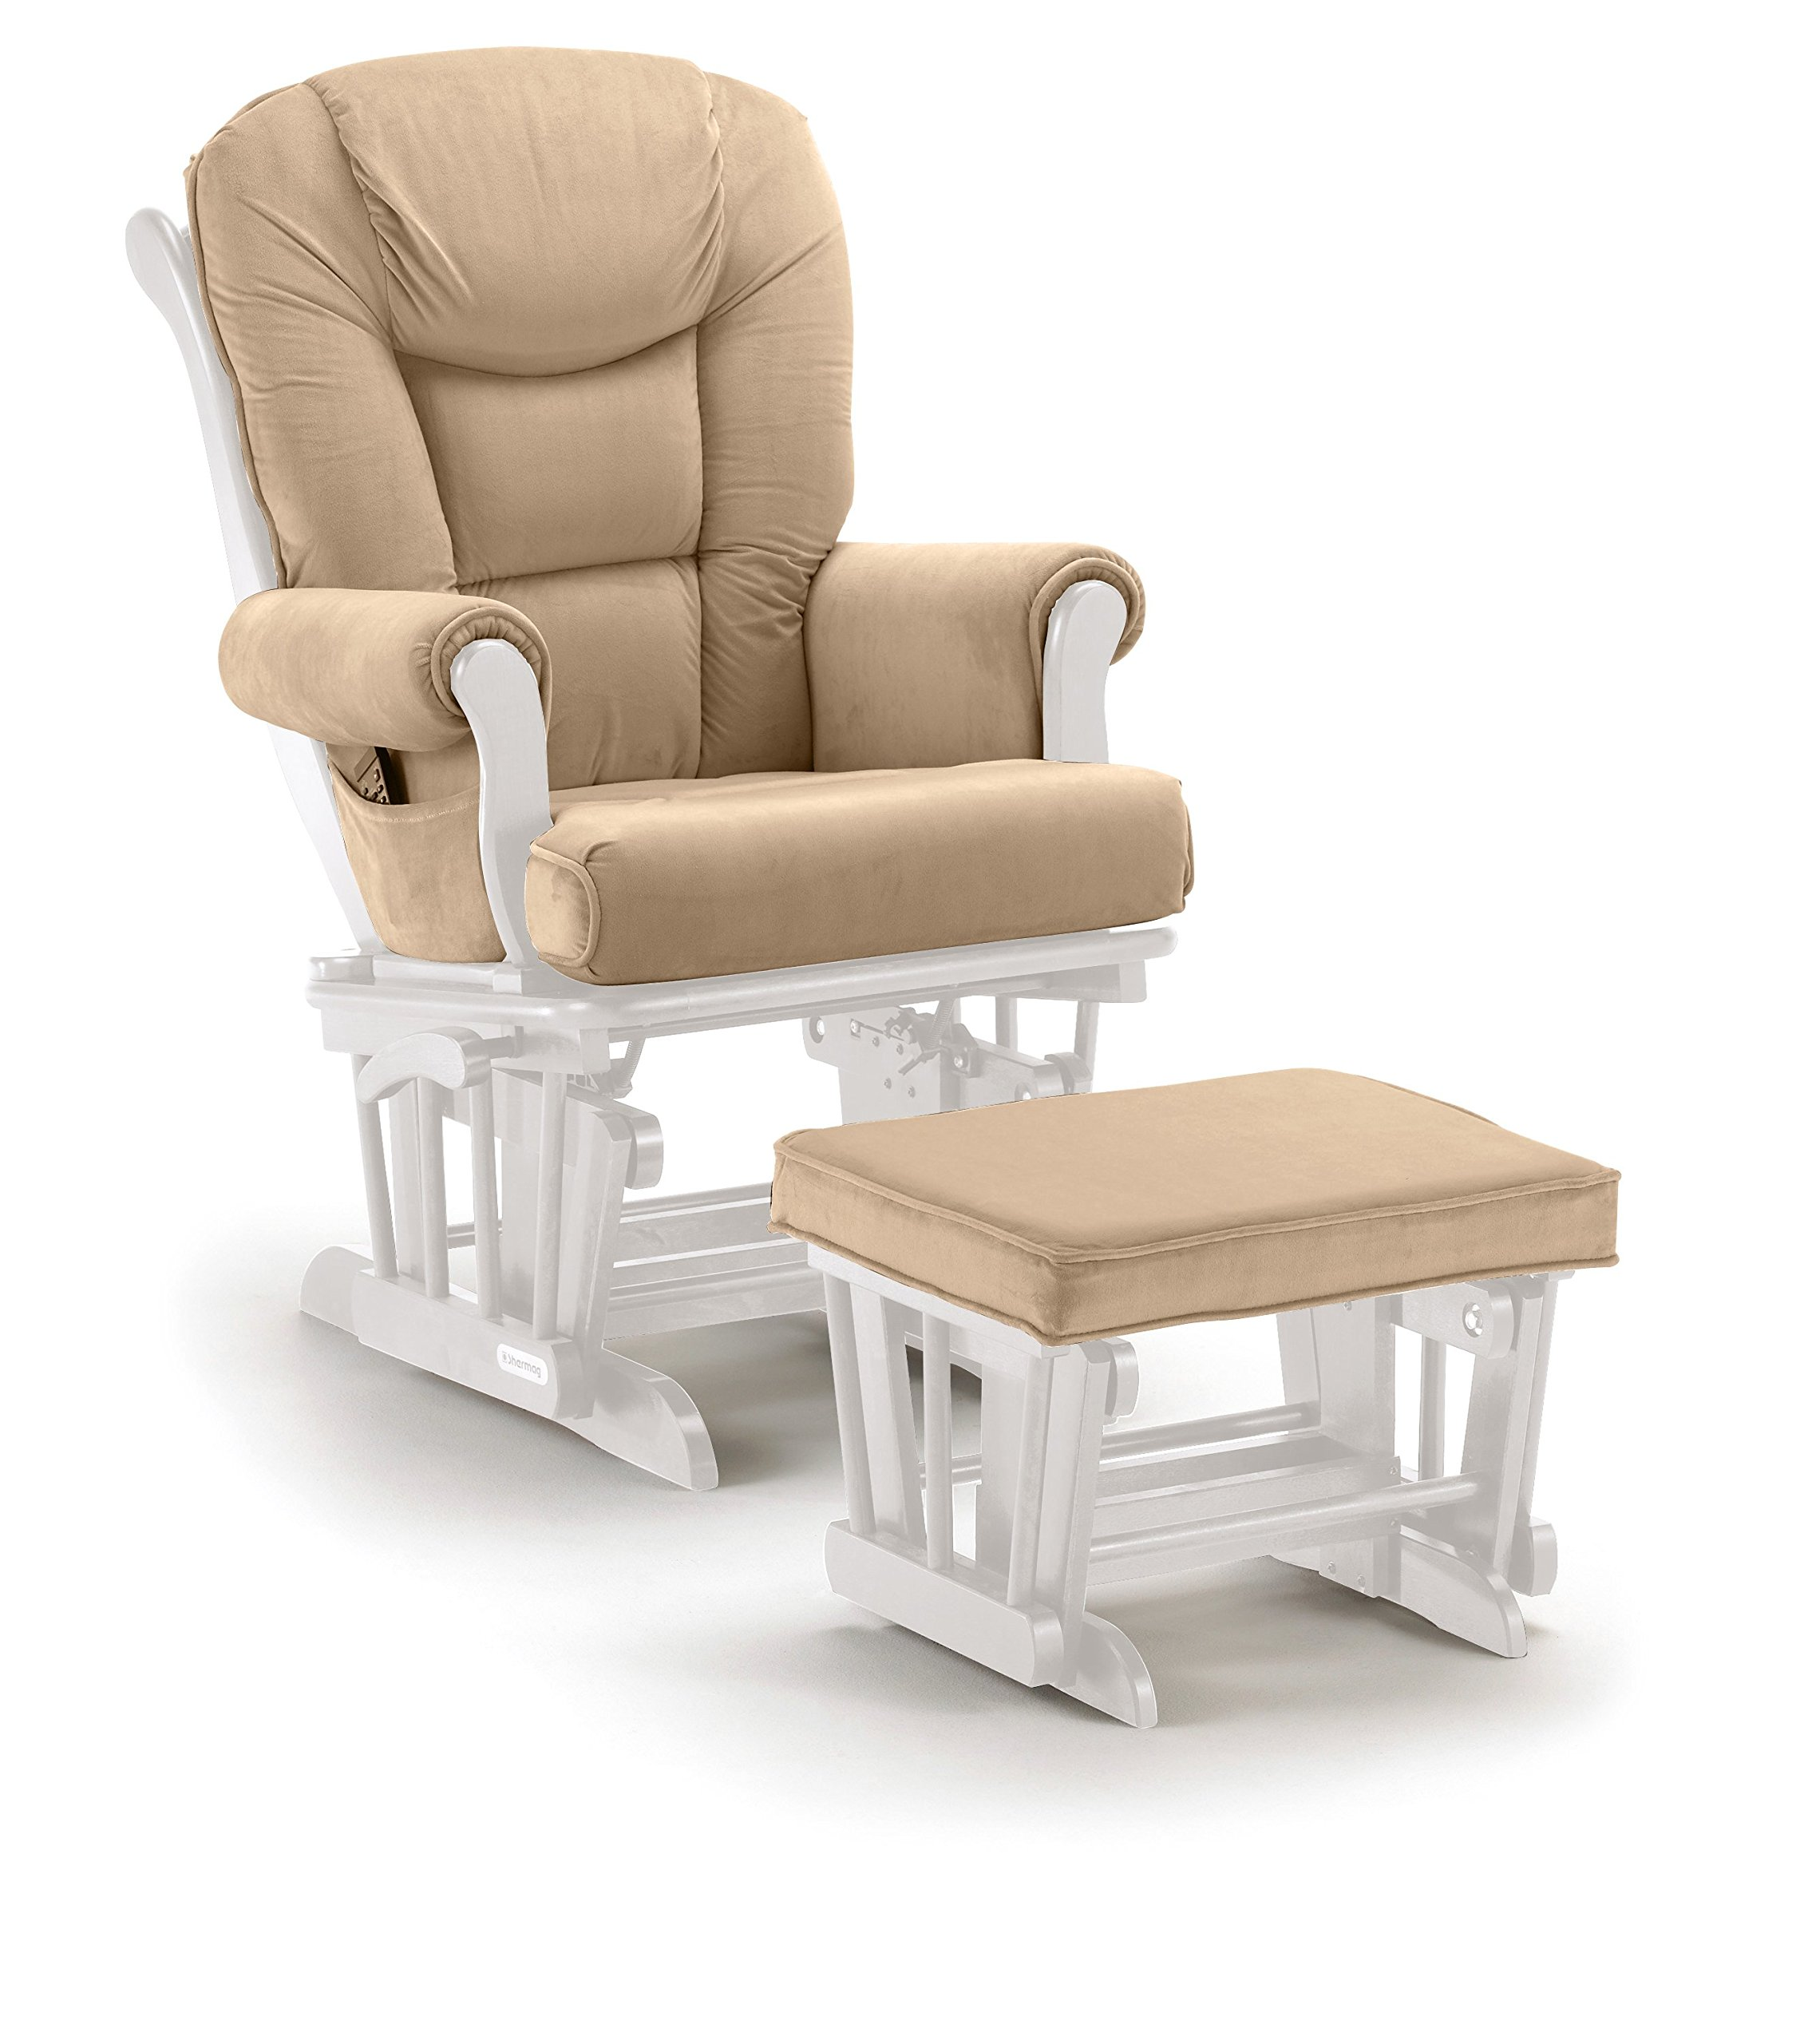 Lennox Multiposition-lock Glider Chair and Ottoman Combo, White with Pearl Beige